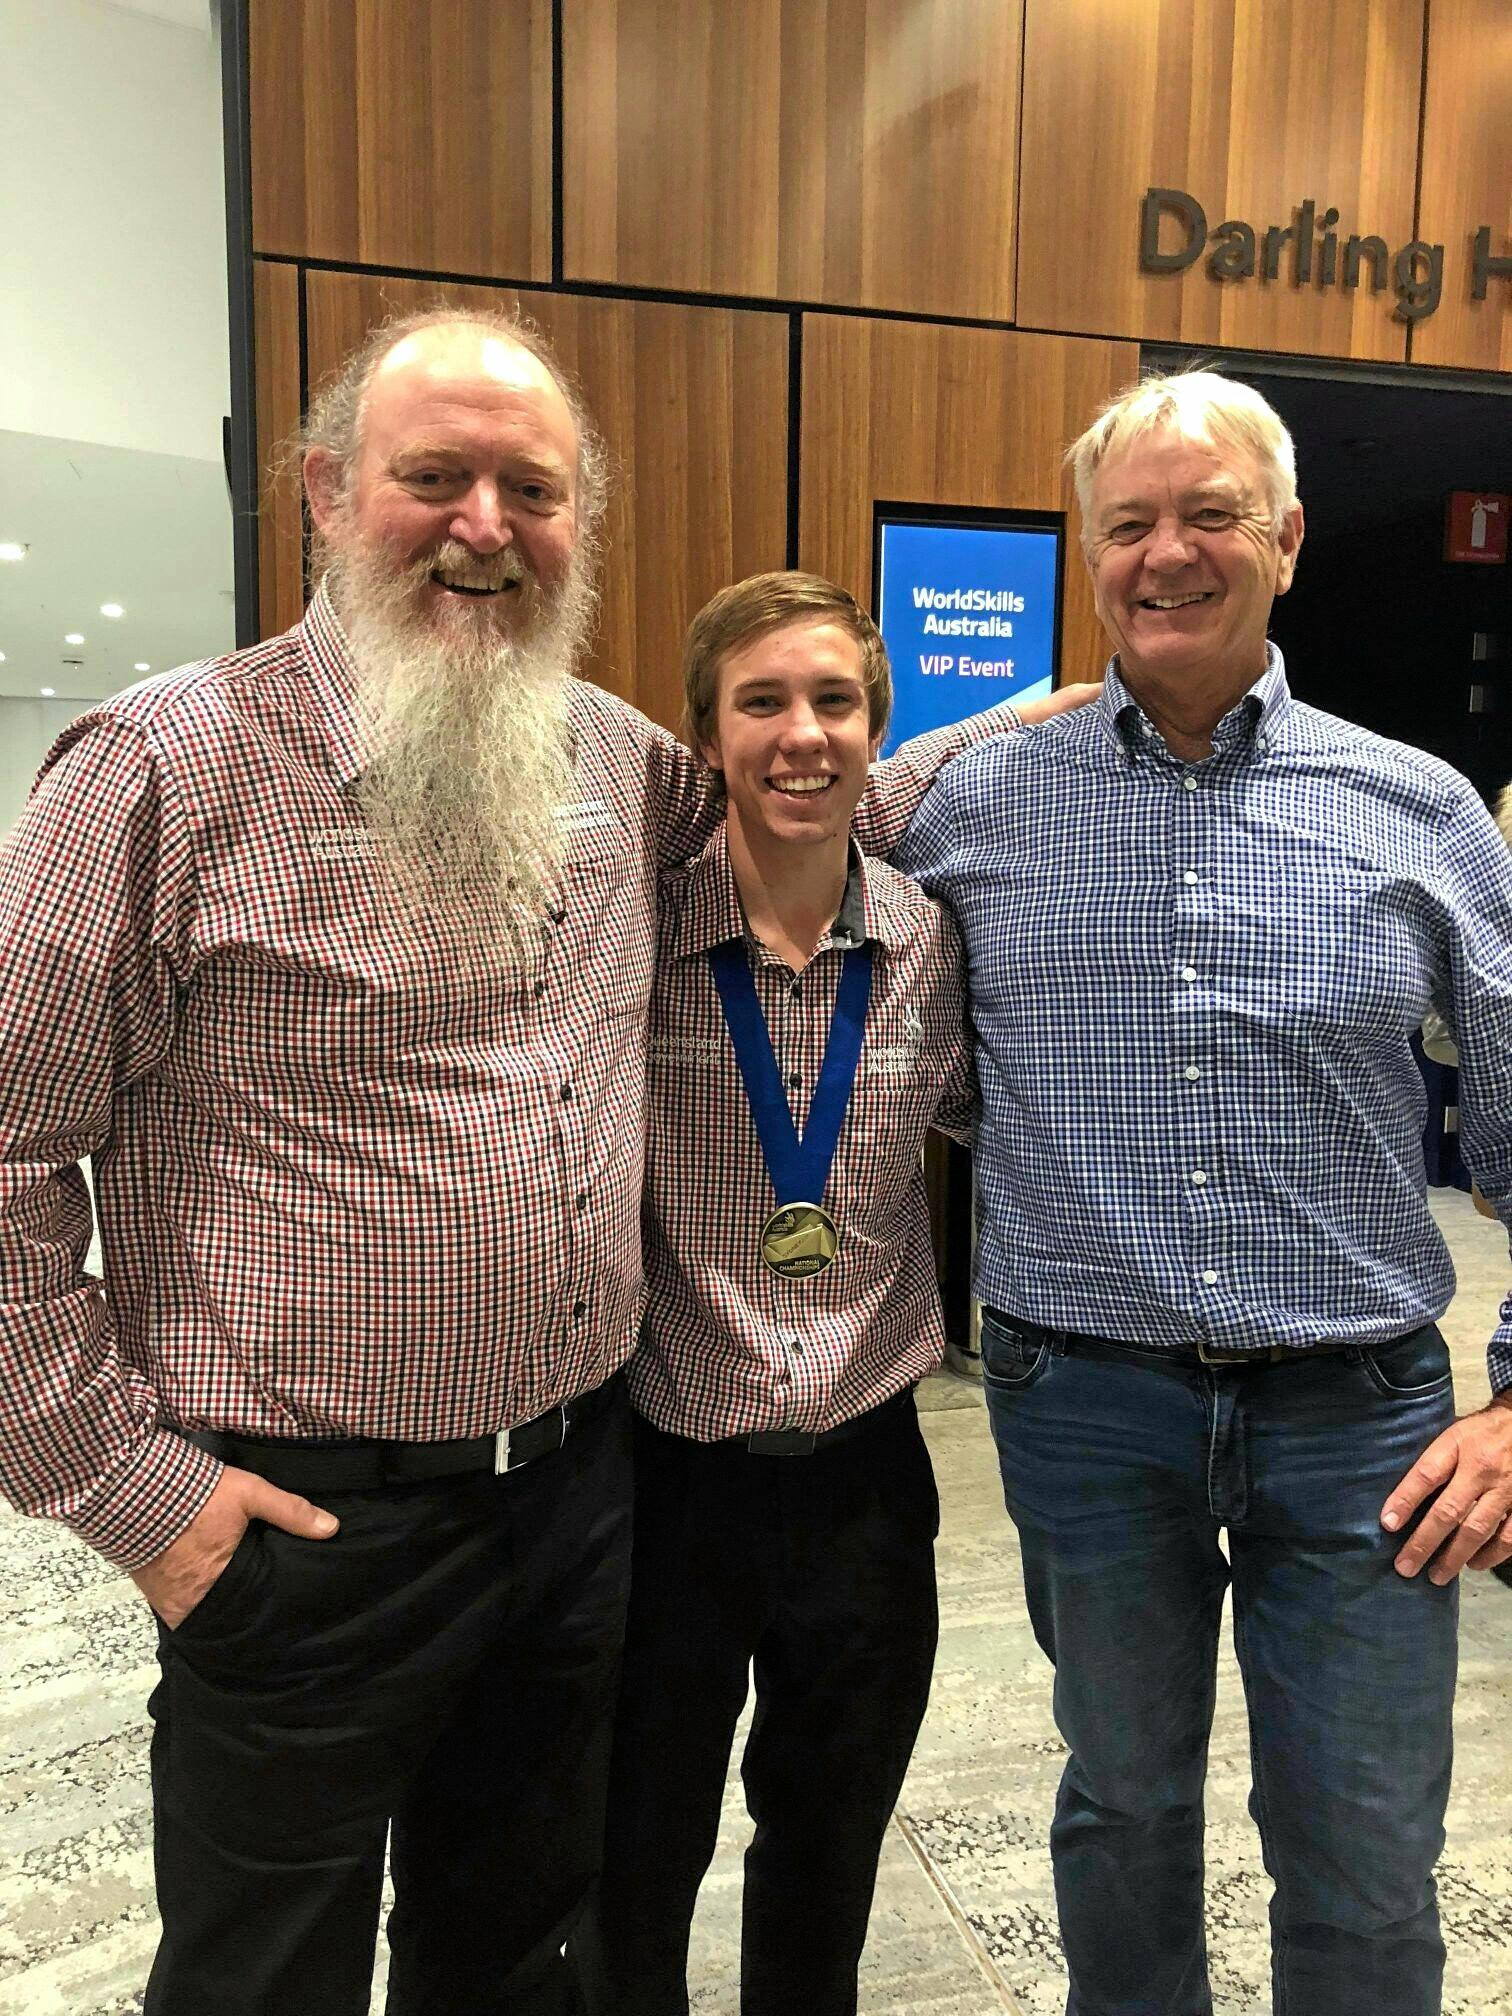 TAFE teacher and Worldskills expert Carl Balke, Pie Creek apprentice Patrick Brennan and his employer Tony Stephens celebrate Patrick's gold medal win at the national championships in Sydney.